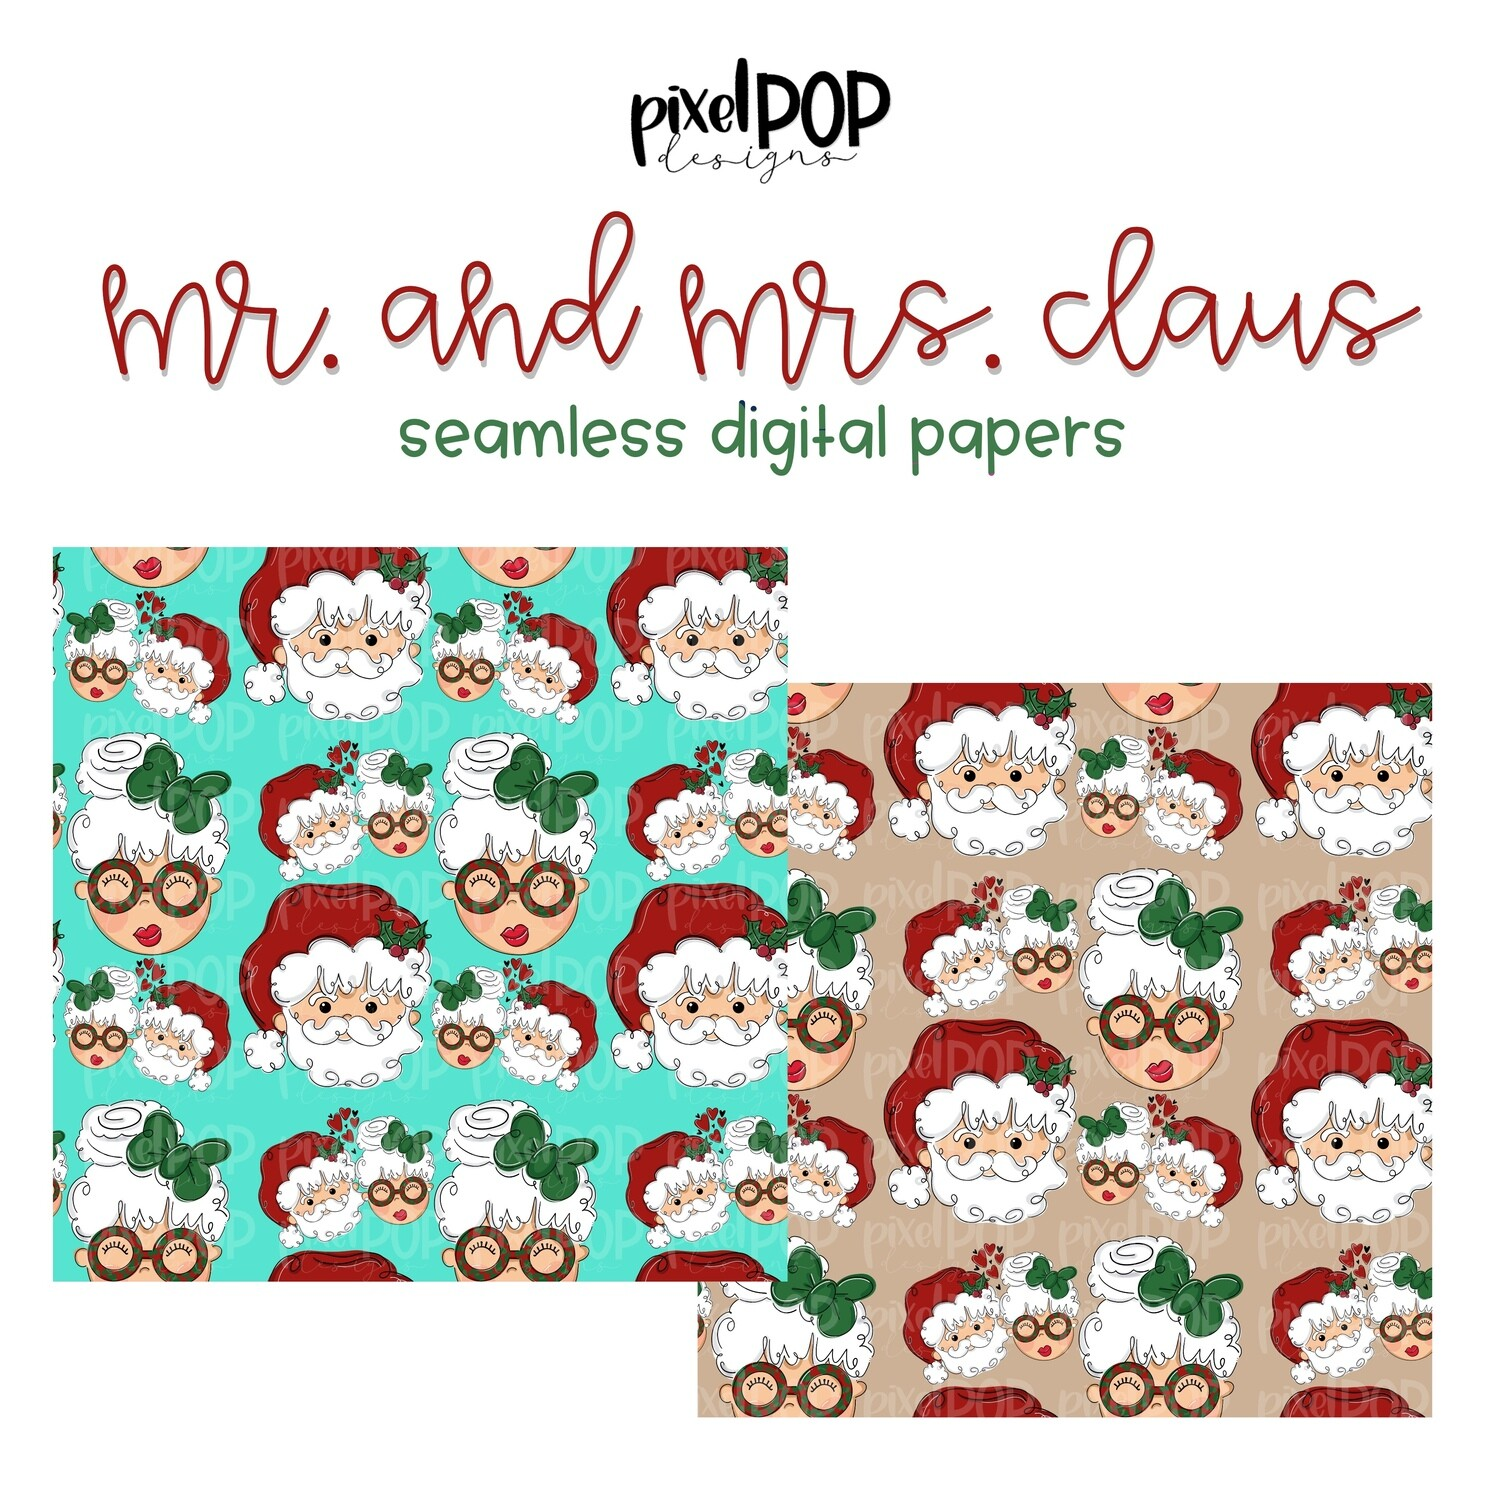 Mr. and Mrs. Claus Seamless Digital Paper Set of Two PNG   Christmas Art   Hand Painted   Digital Download   Digital Scrapbooking